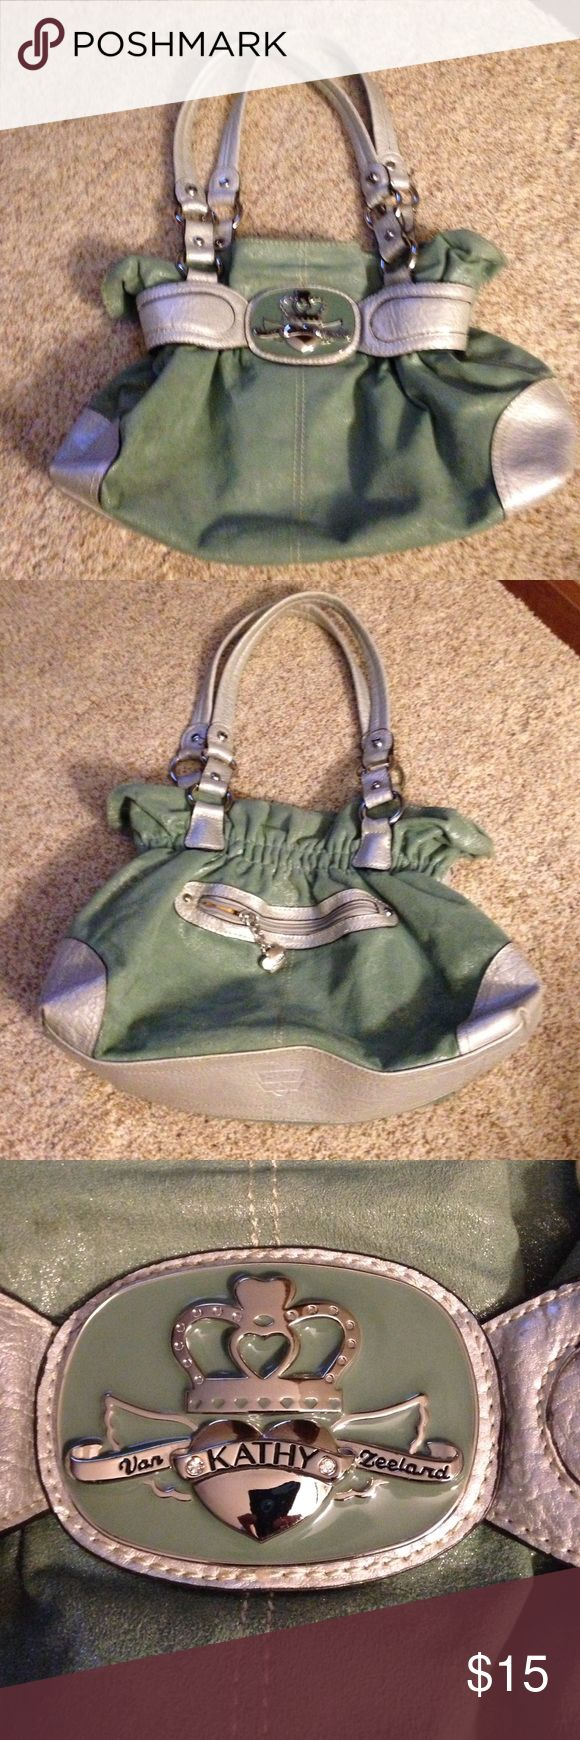 """Kathy Van Zeeland purse Green and silver  Kathy Van Zeeland purse.  Measures 14""""x 10"""".  Purse is in good condition.  There are a few marks on the inside bottom. Kathy Van Zeeland Bags Shoulder Bags"""